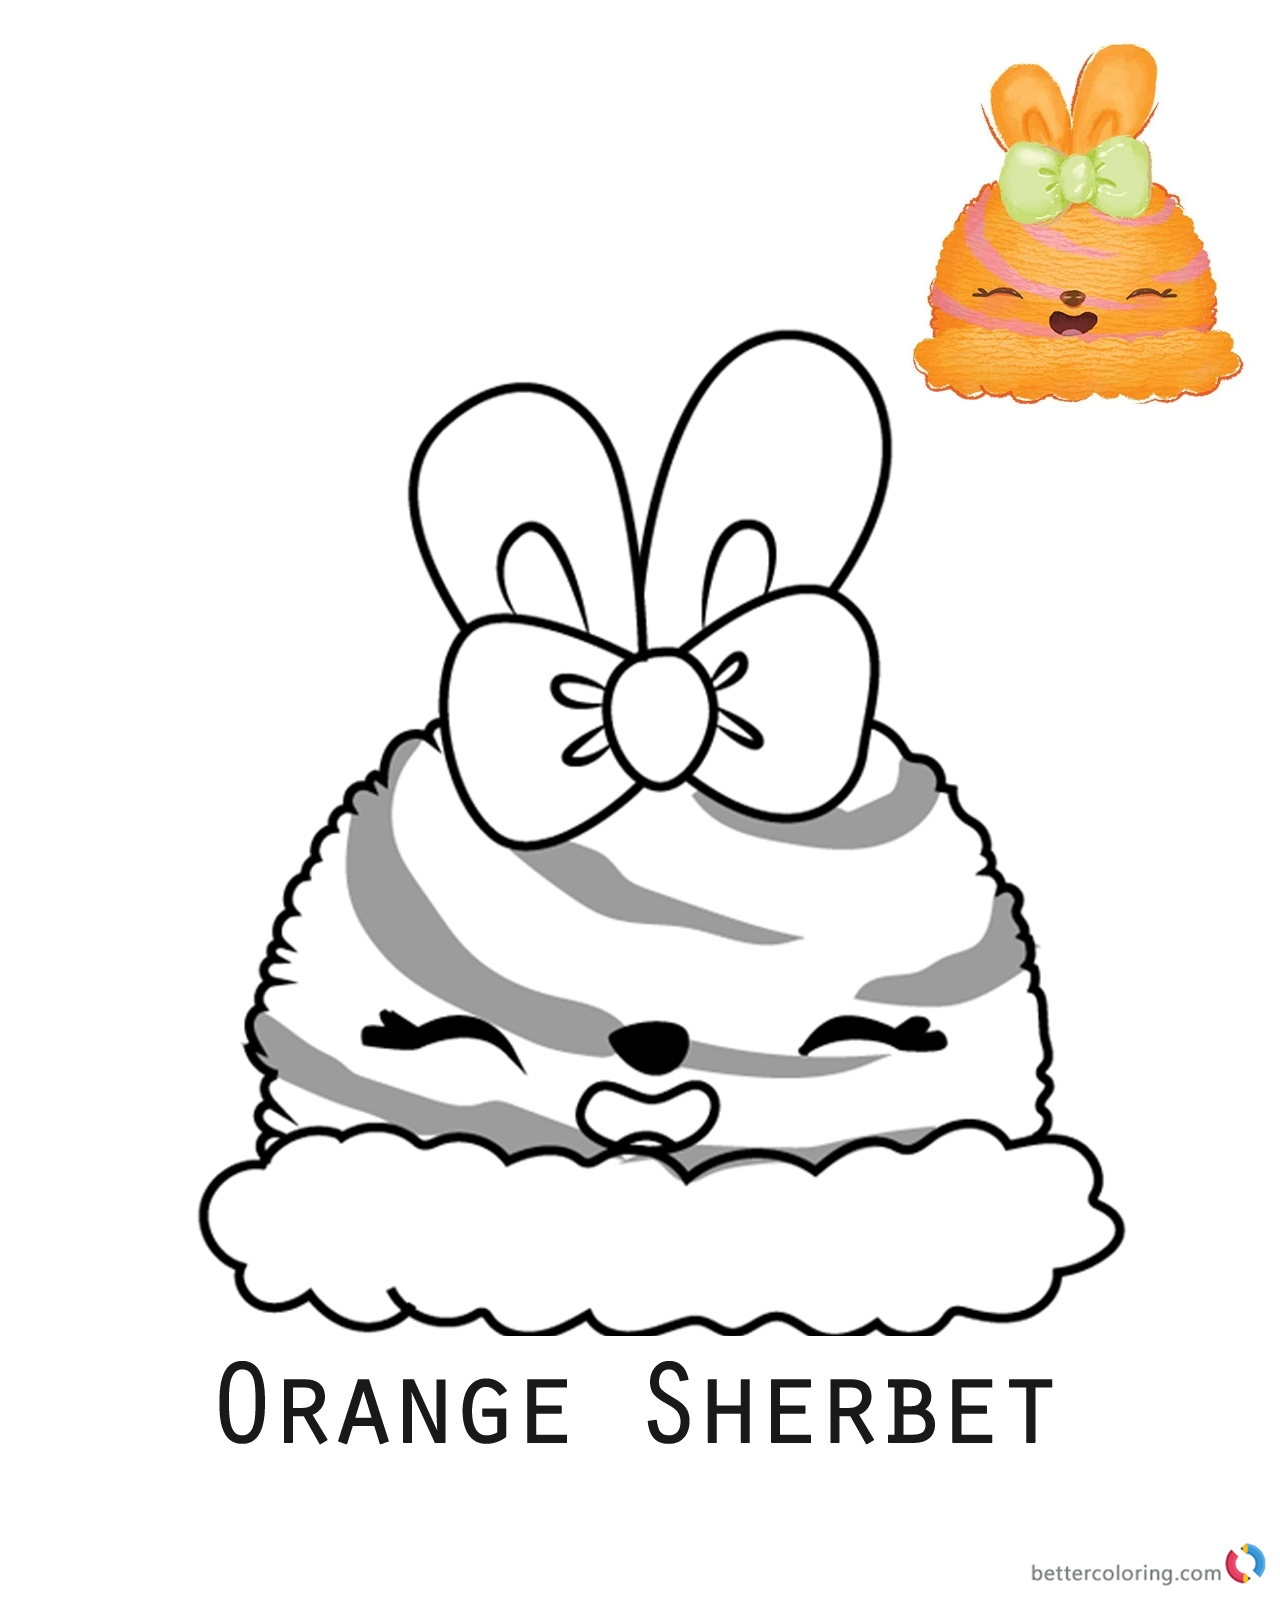 Orange Sherbet from Num Noms coloring pages printable